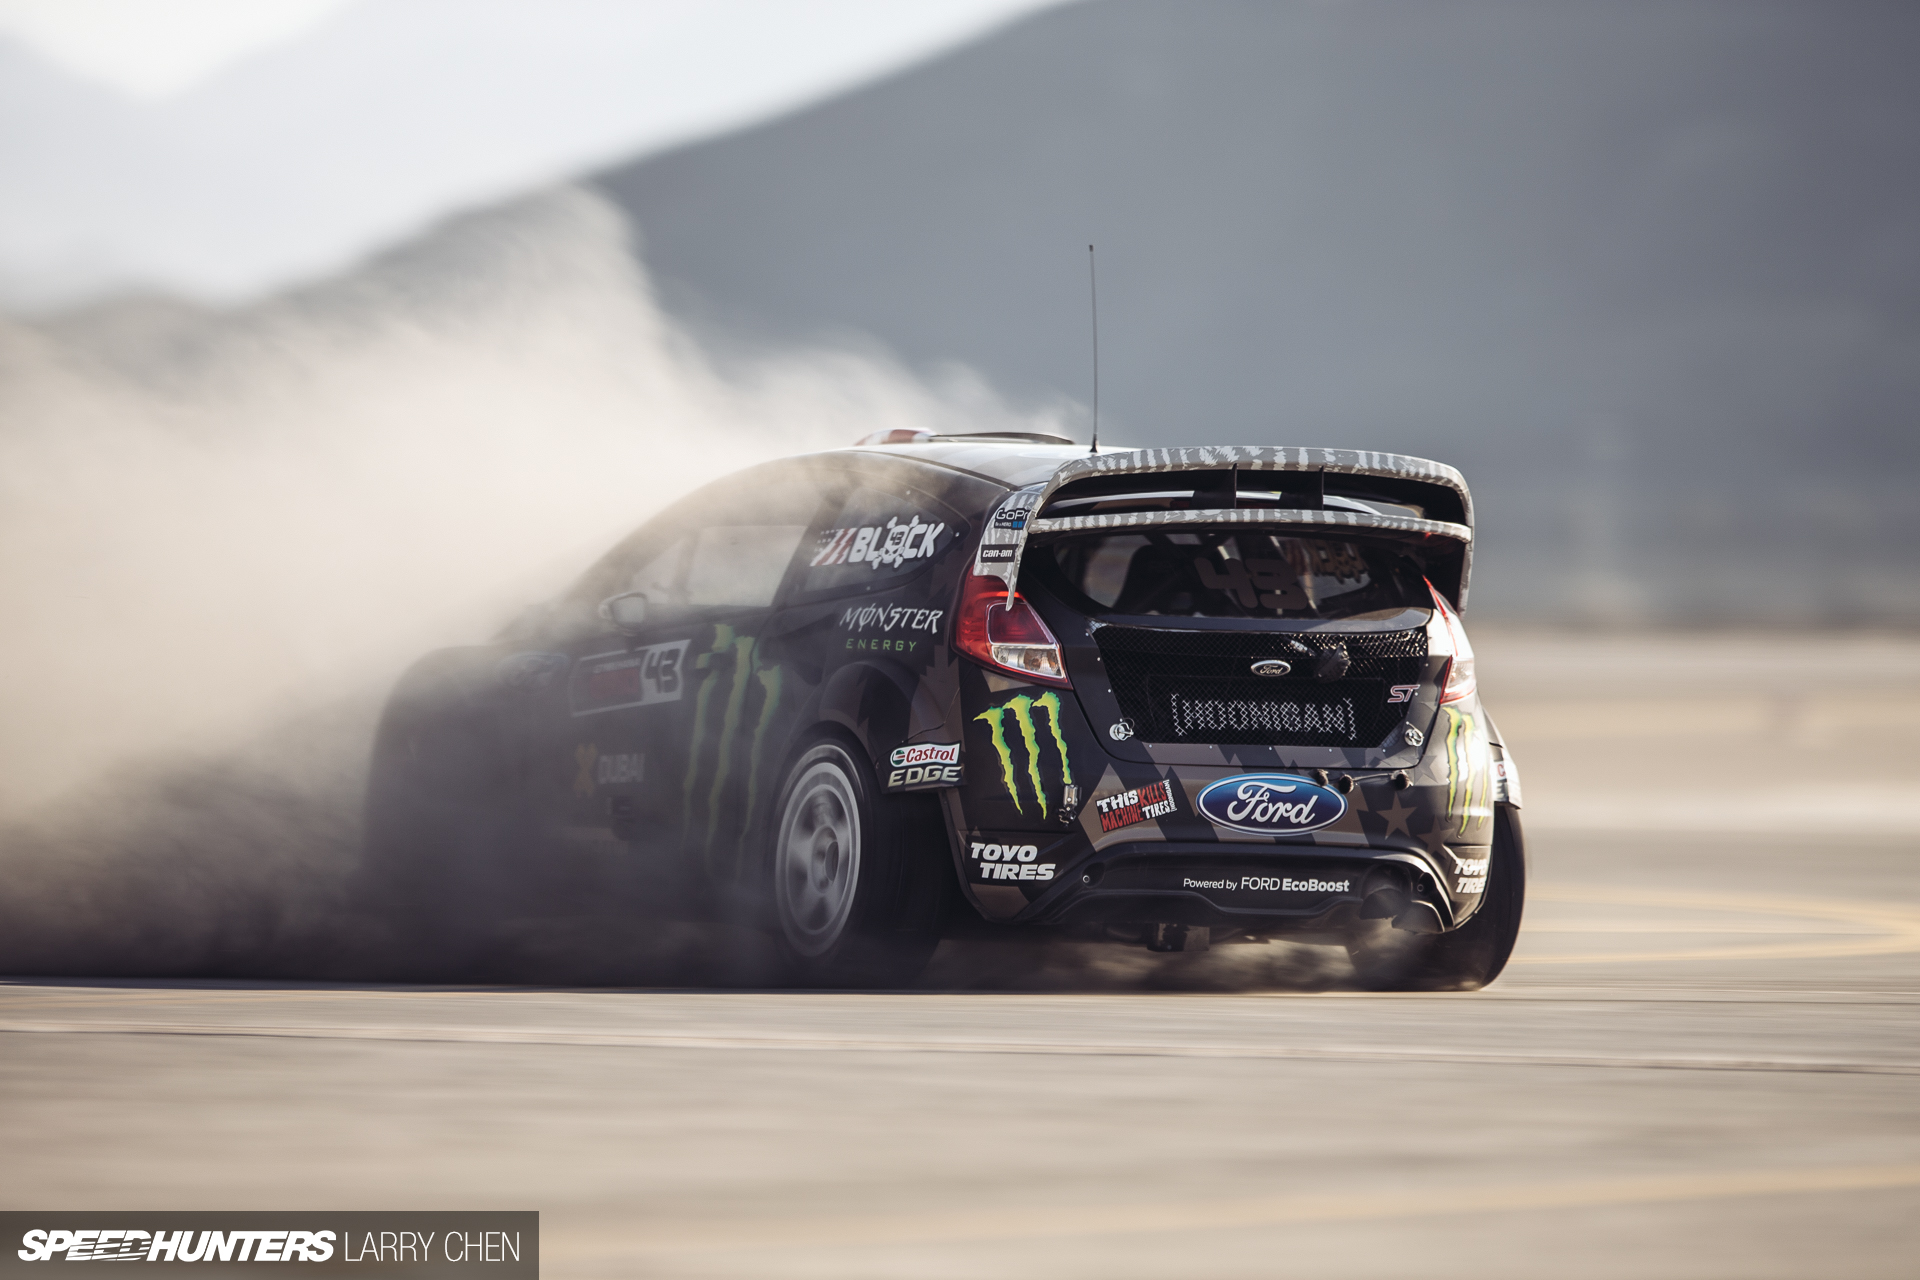 Block K Chen the of gymkhana eight speedhunters